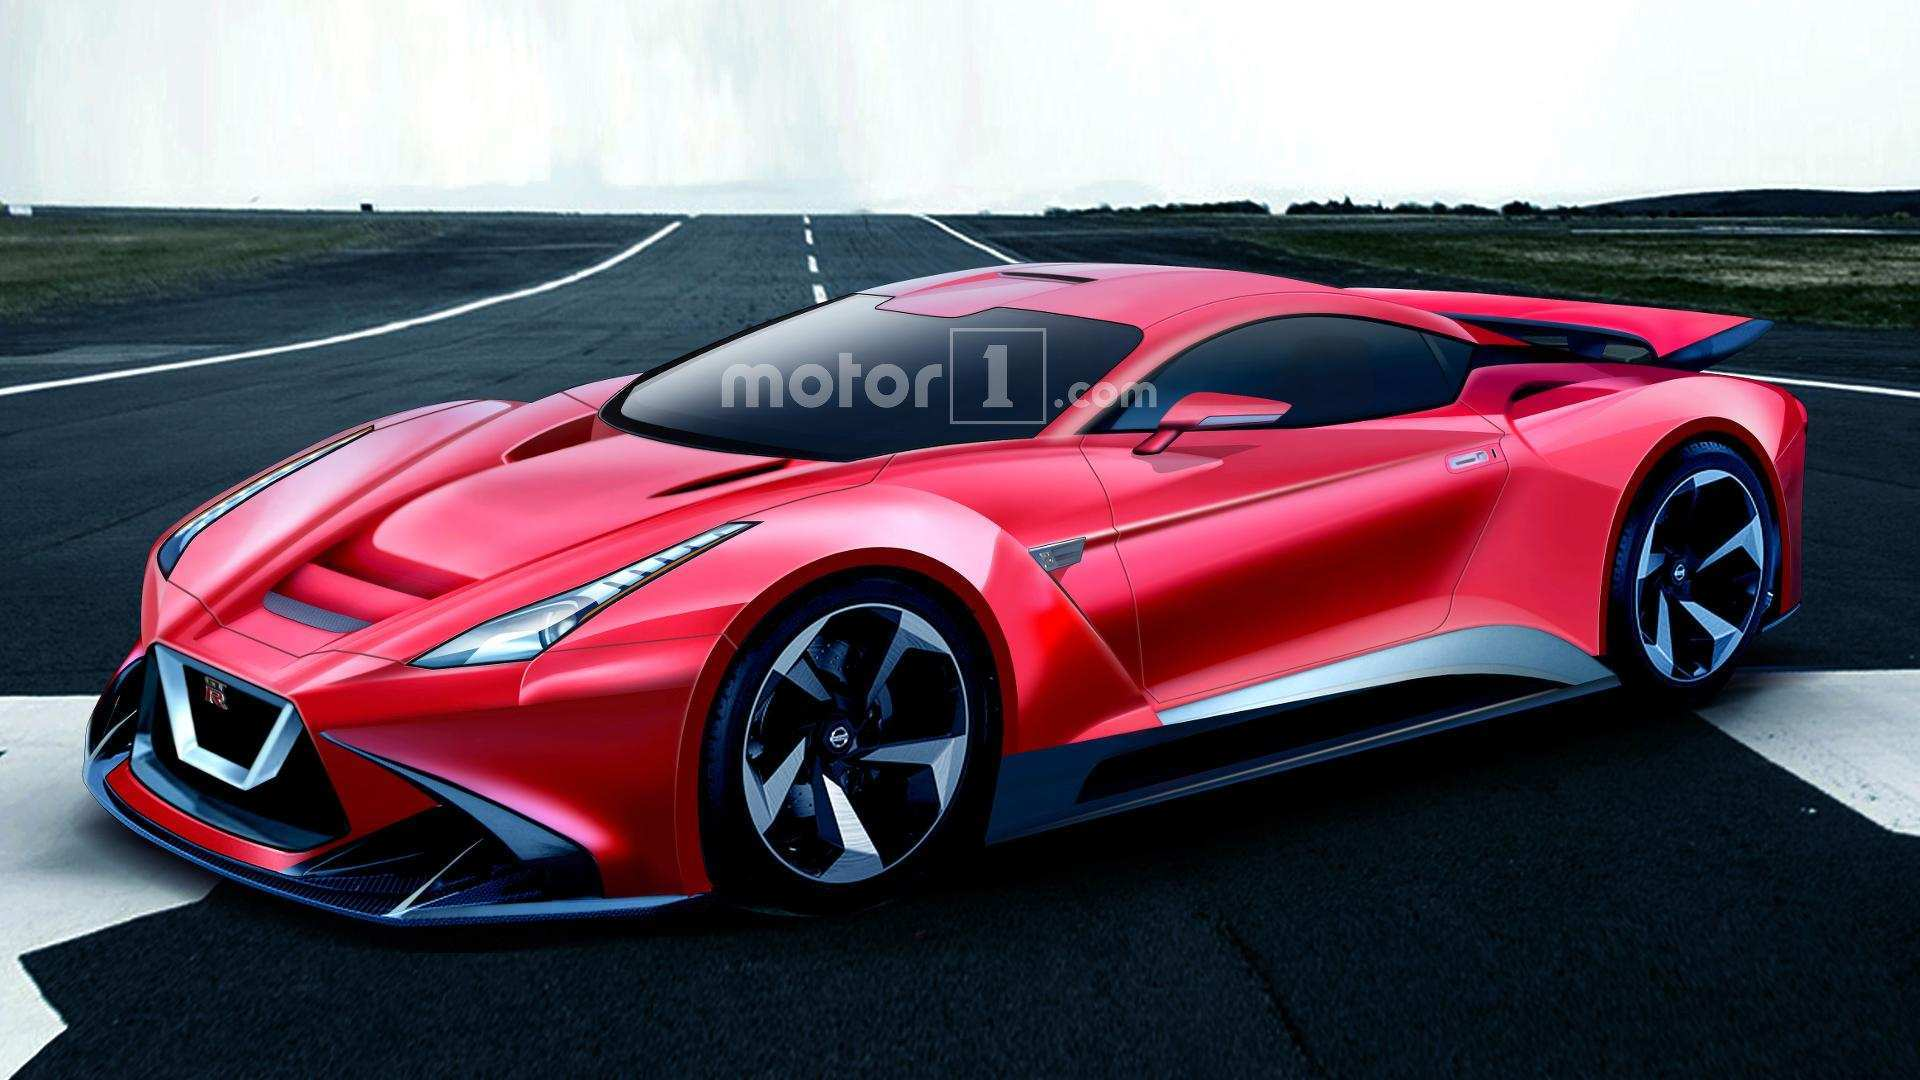 52 Gallery of New Gtr Nissan 2020 Price and Review for New Gtr Nissan 2020